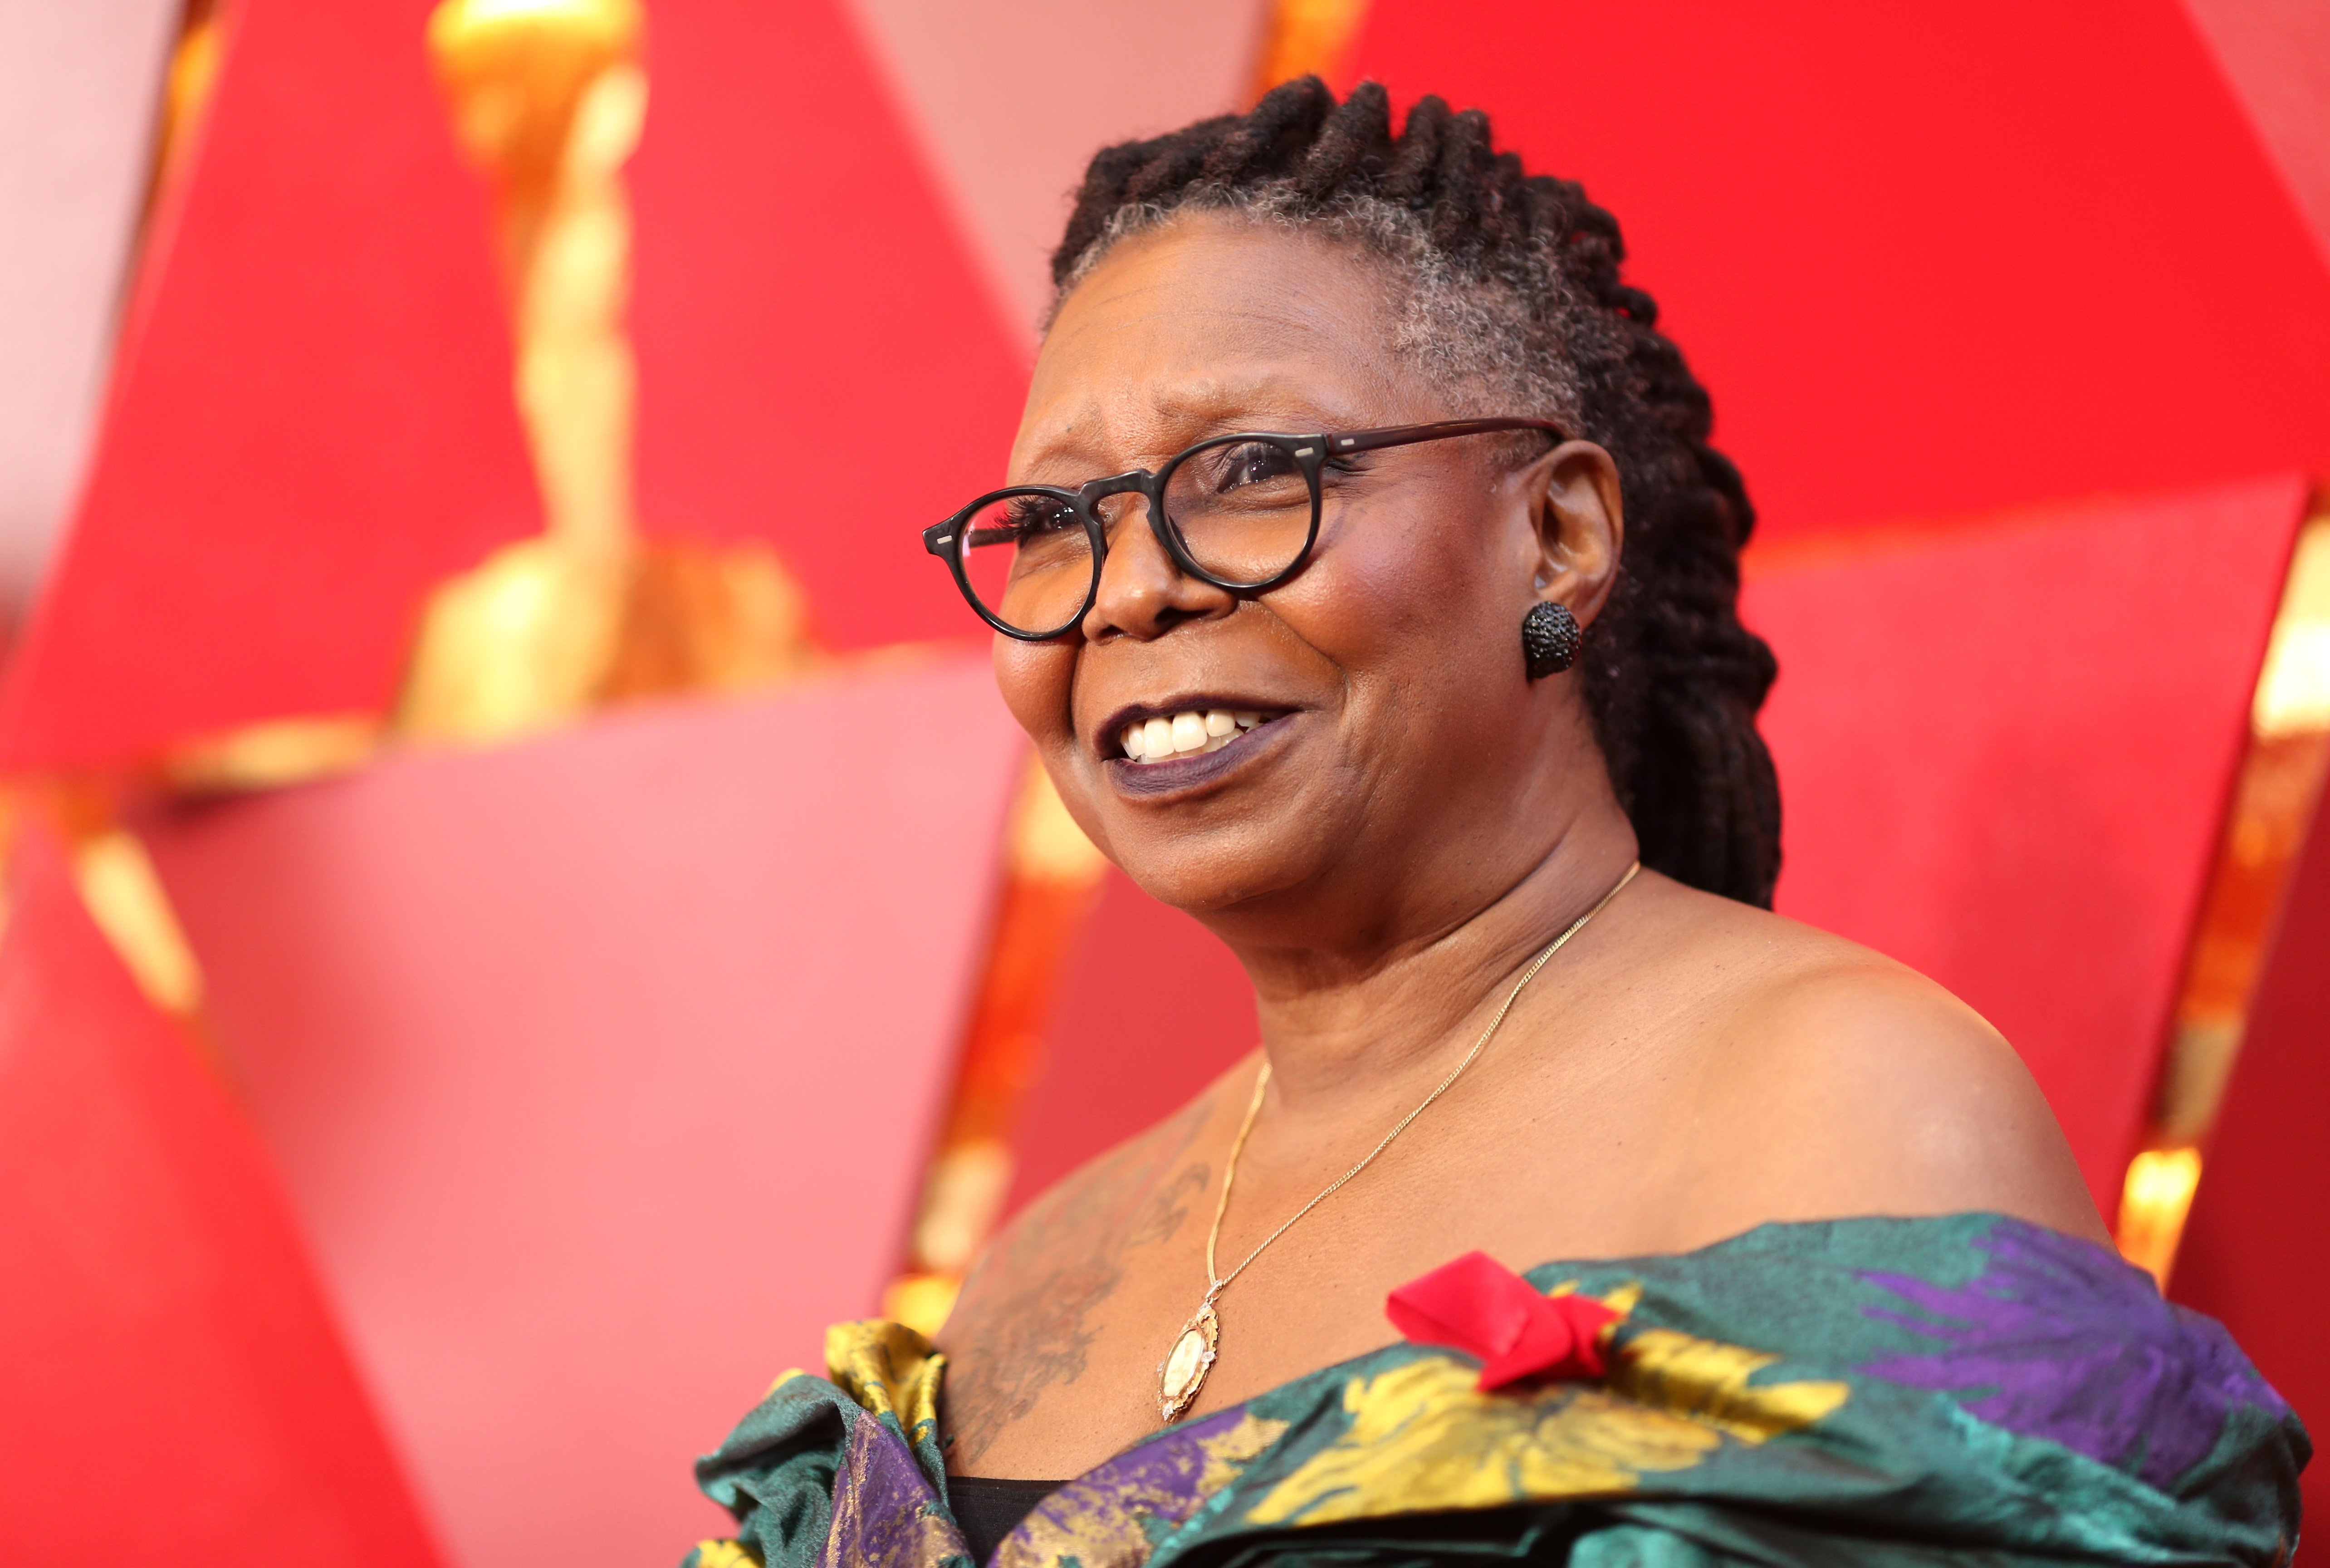 Whoopi Goldberg at the 90th Annual Academy Awards on Mar. 4, 2018 in California | Photo: Getty Images